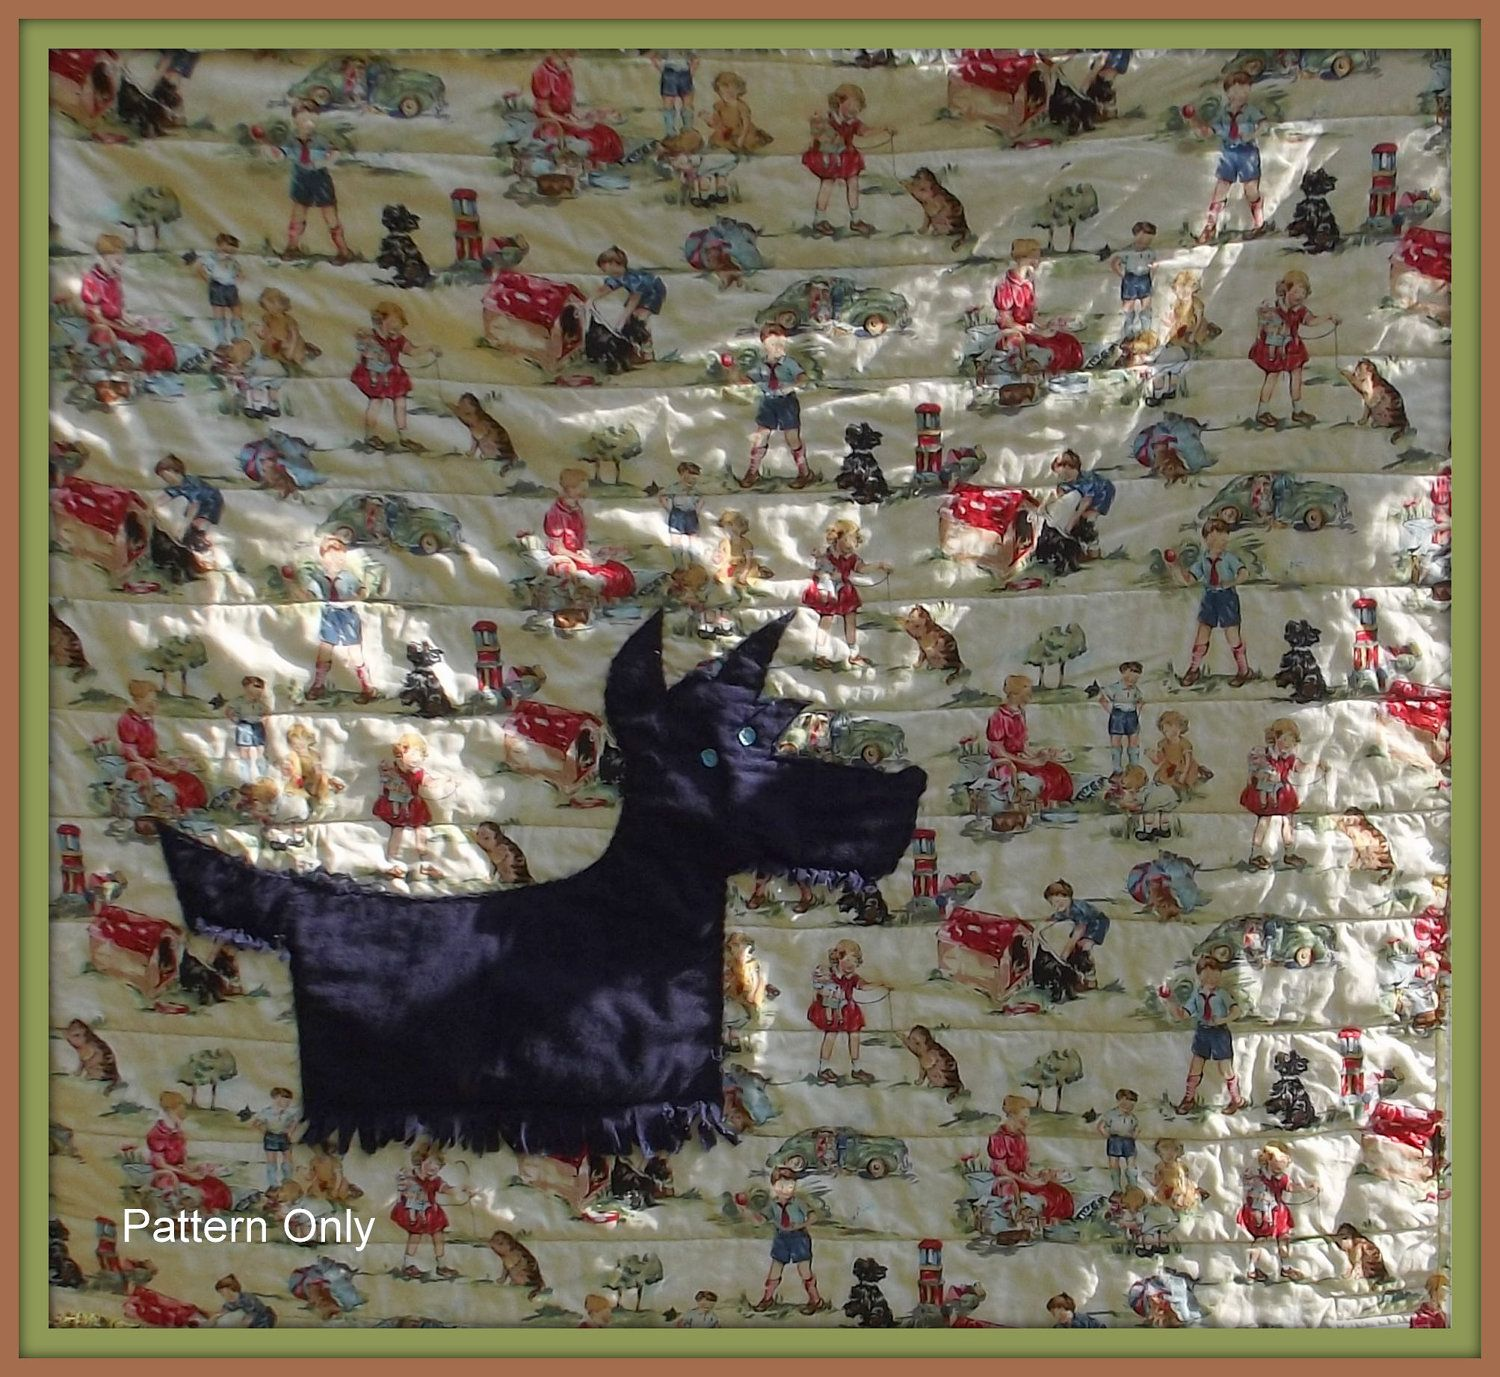 scottie dog quilt pattern | in and out the needle goes | Pinterest ... : scottie quilt pattern - Adamdwight.com